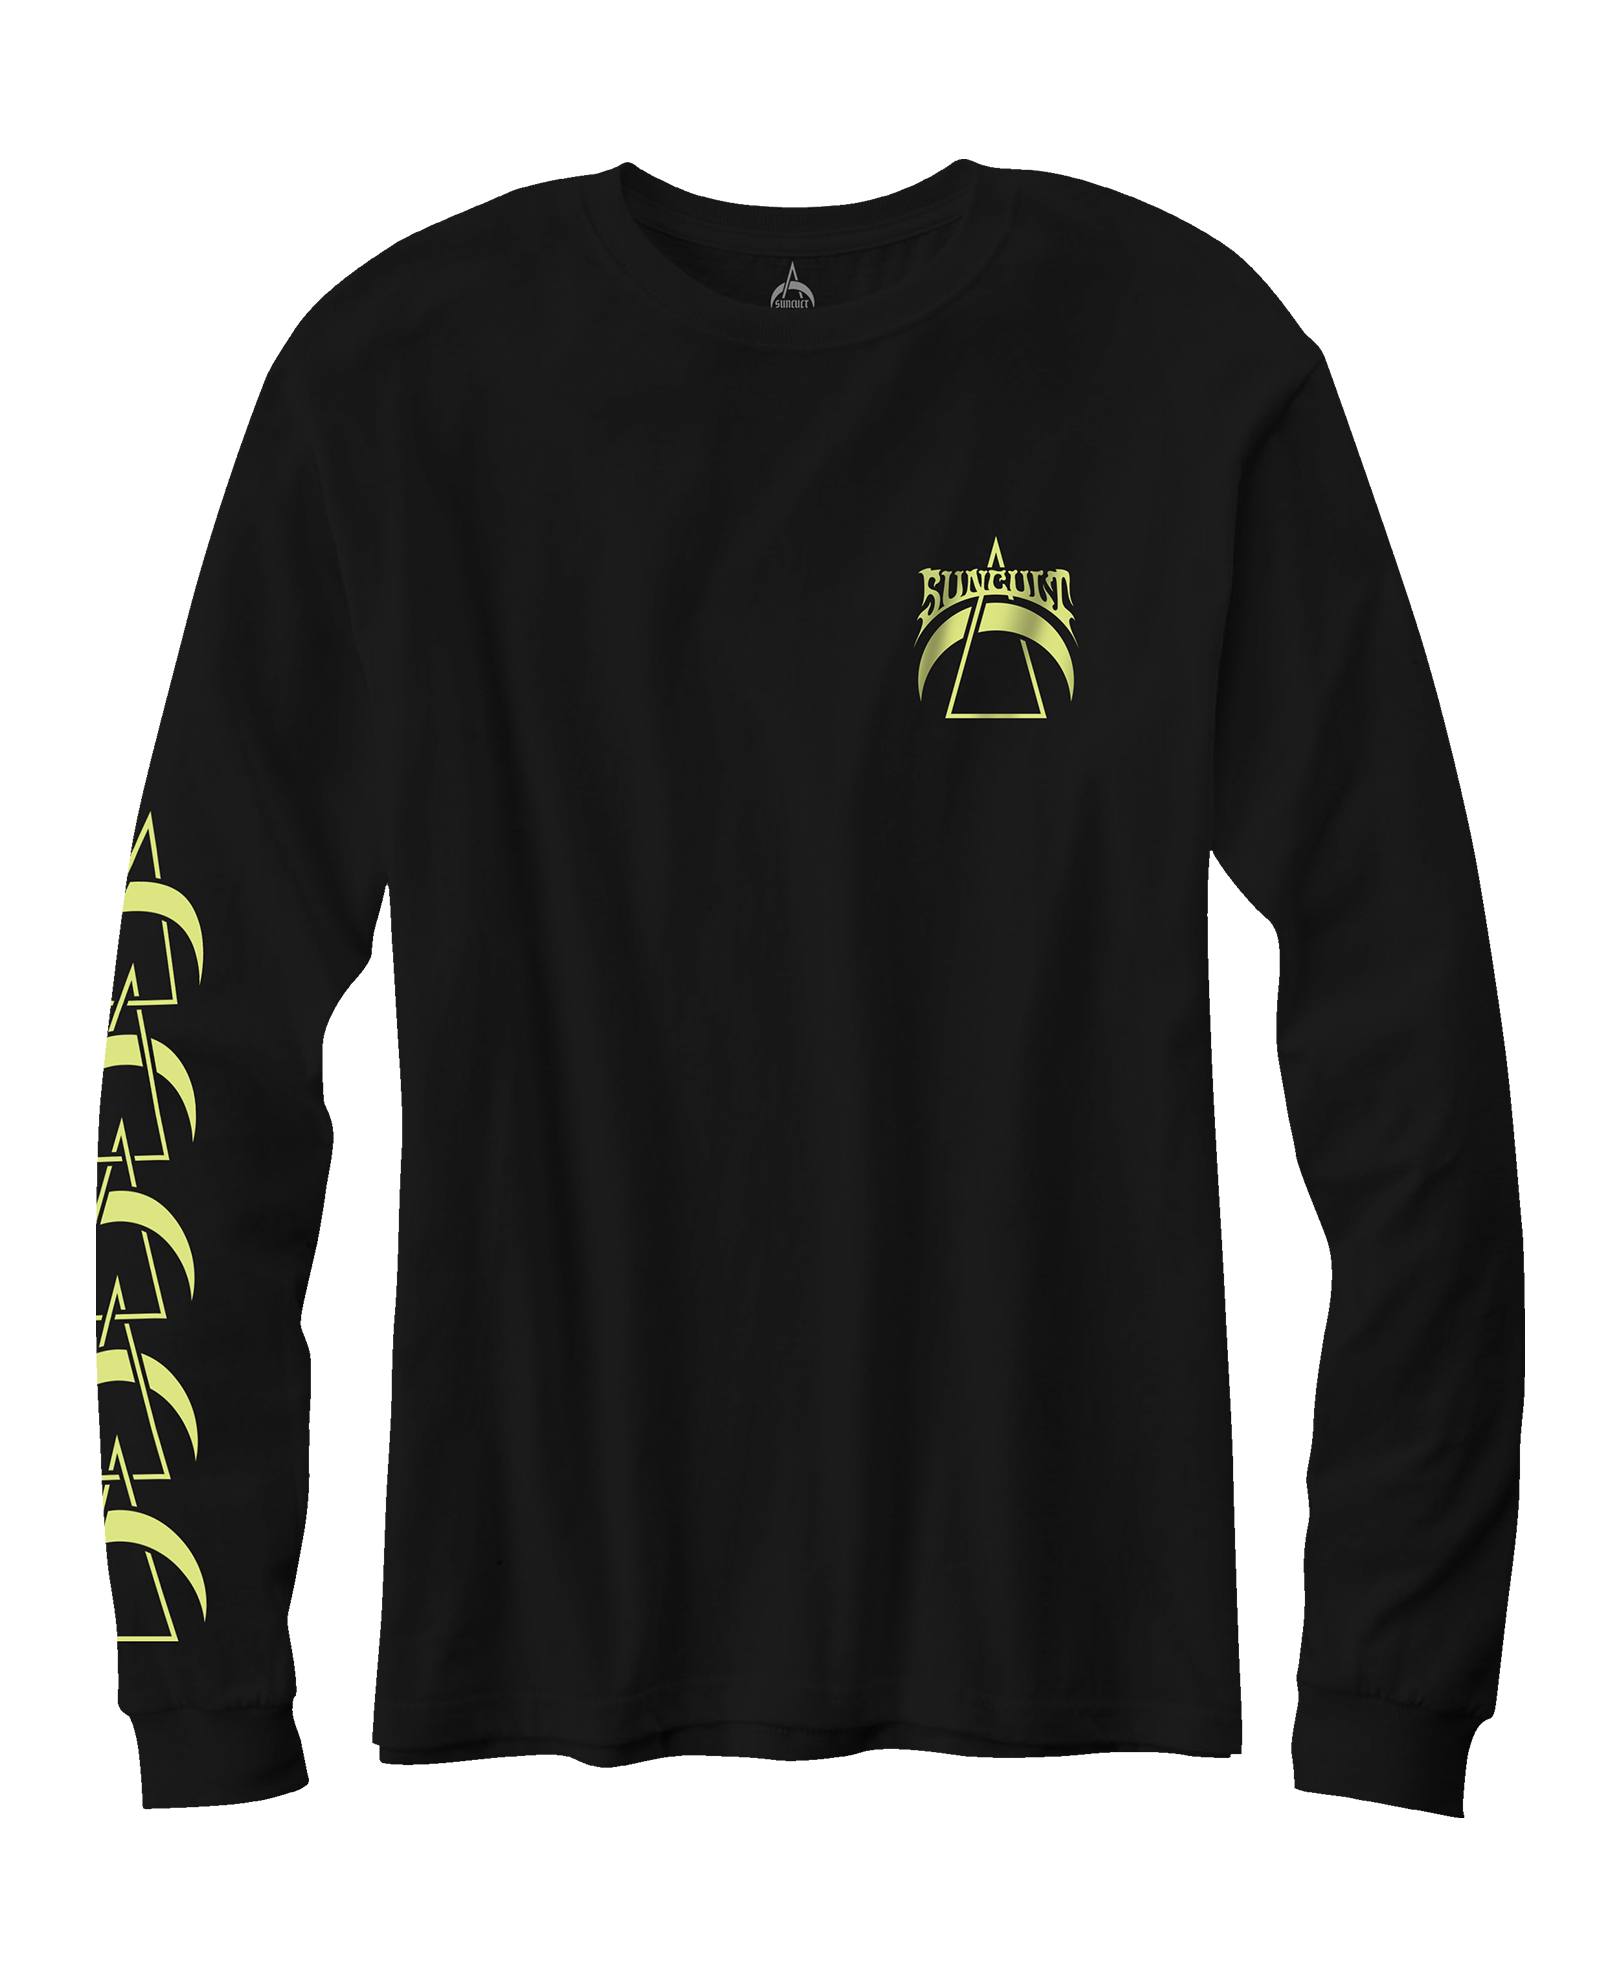 BLACK AUGUST LONGSLEEVE T-SHIRT